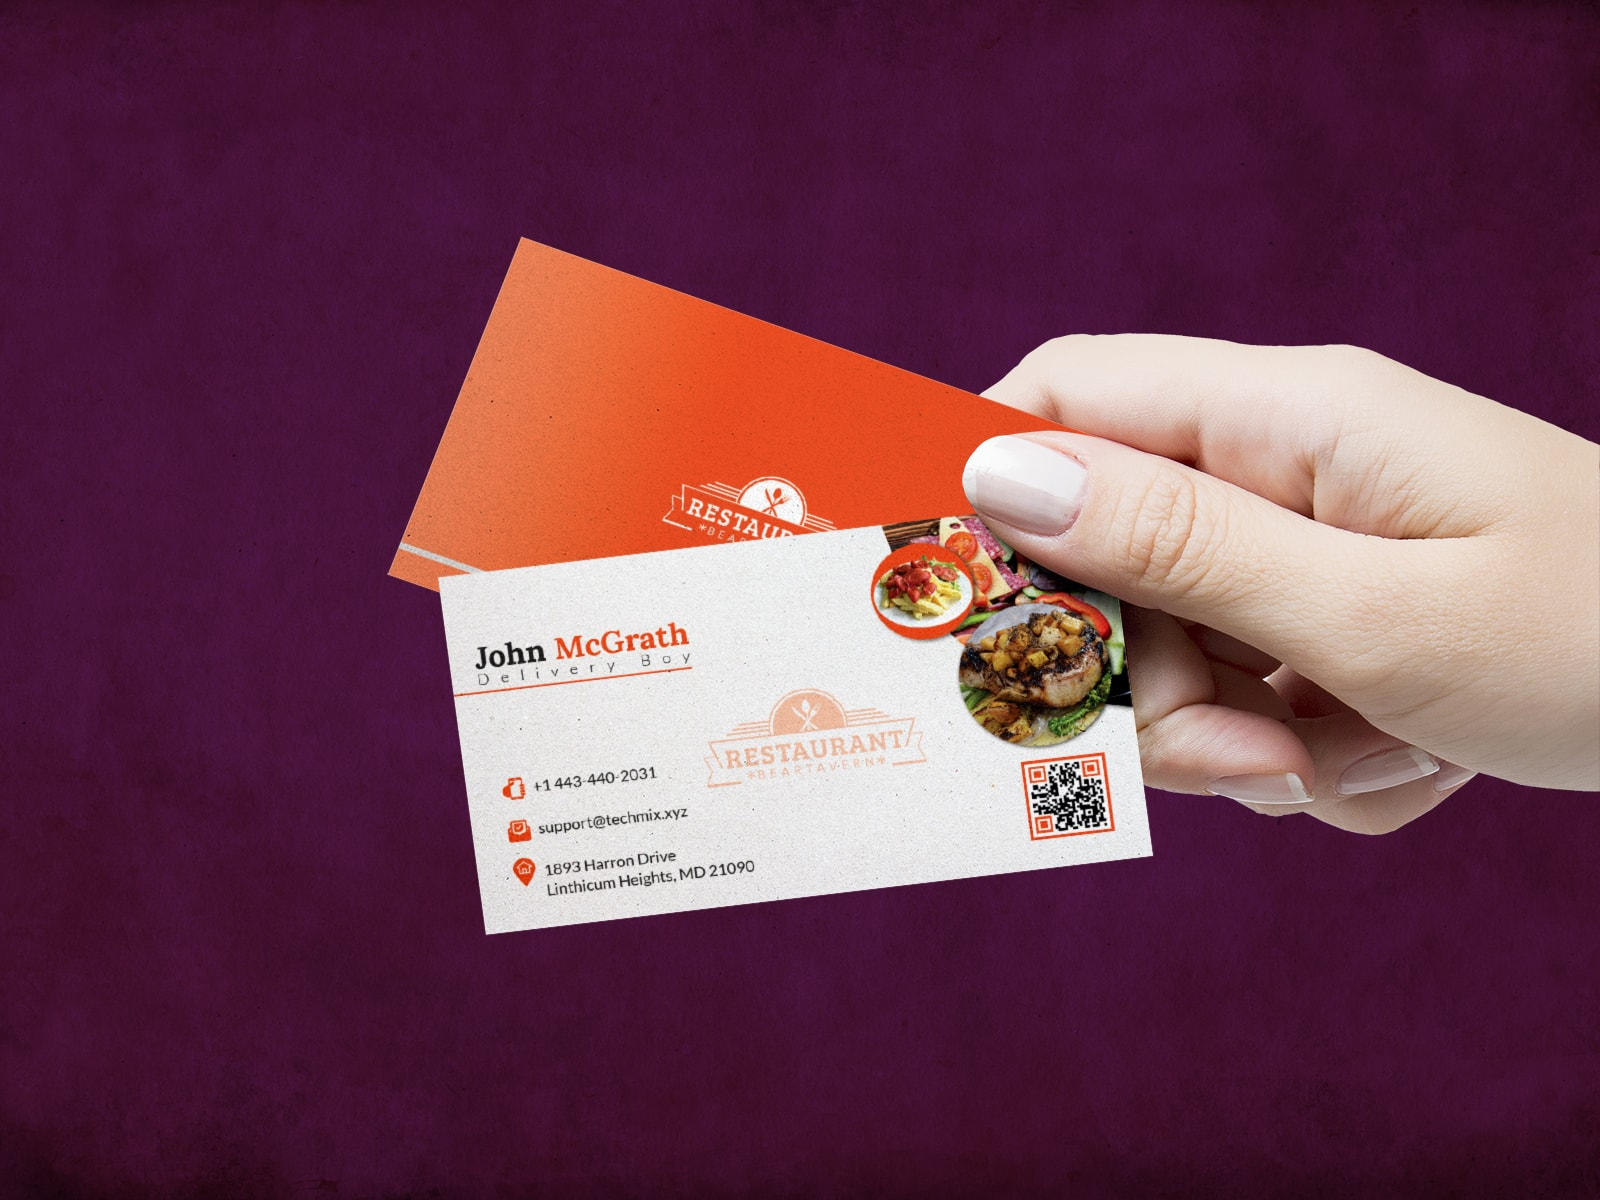 Delivery Boy Business Card